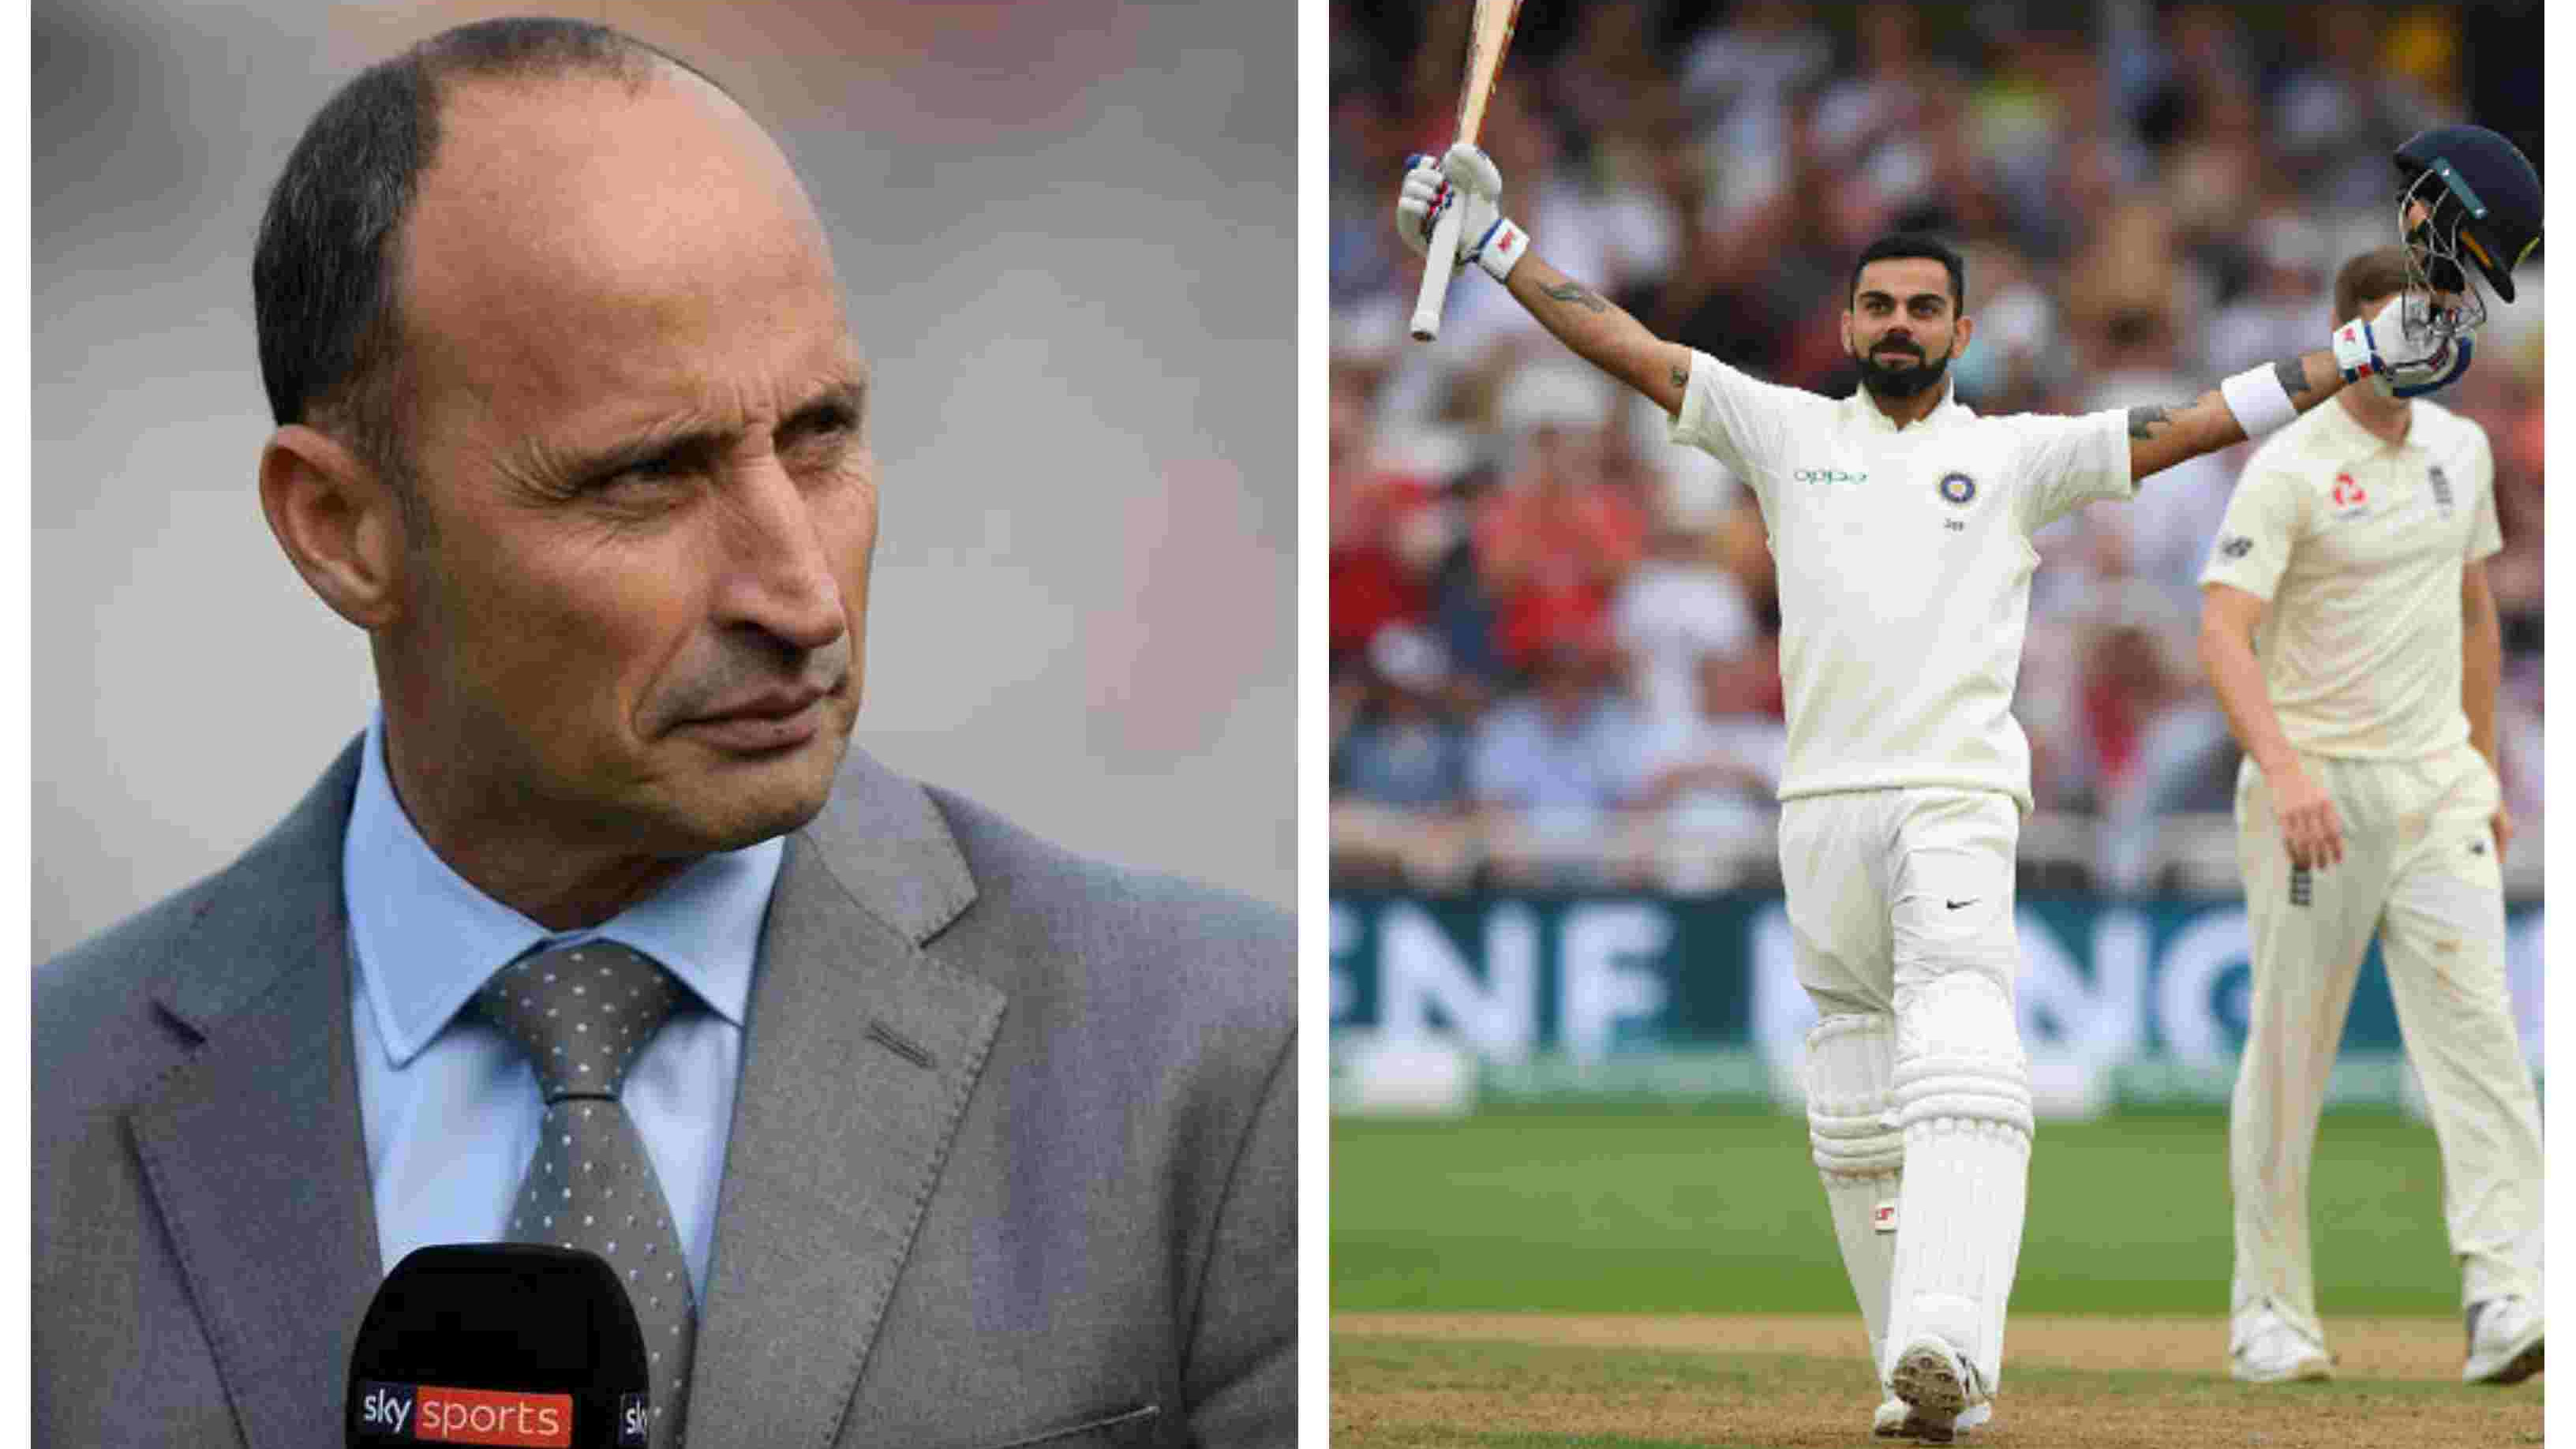 ENG v IND 2018: Virat Kohli is the greatest player on the planet right now, says Nasser Hussain